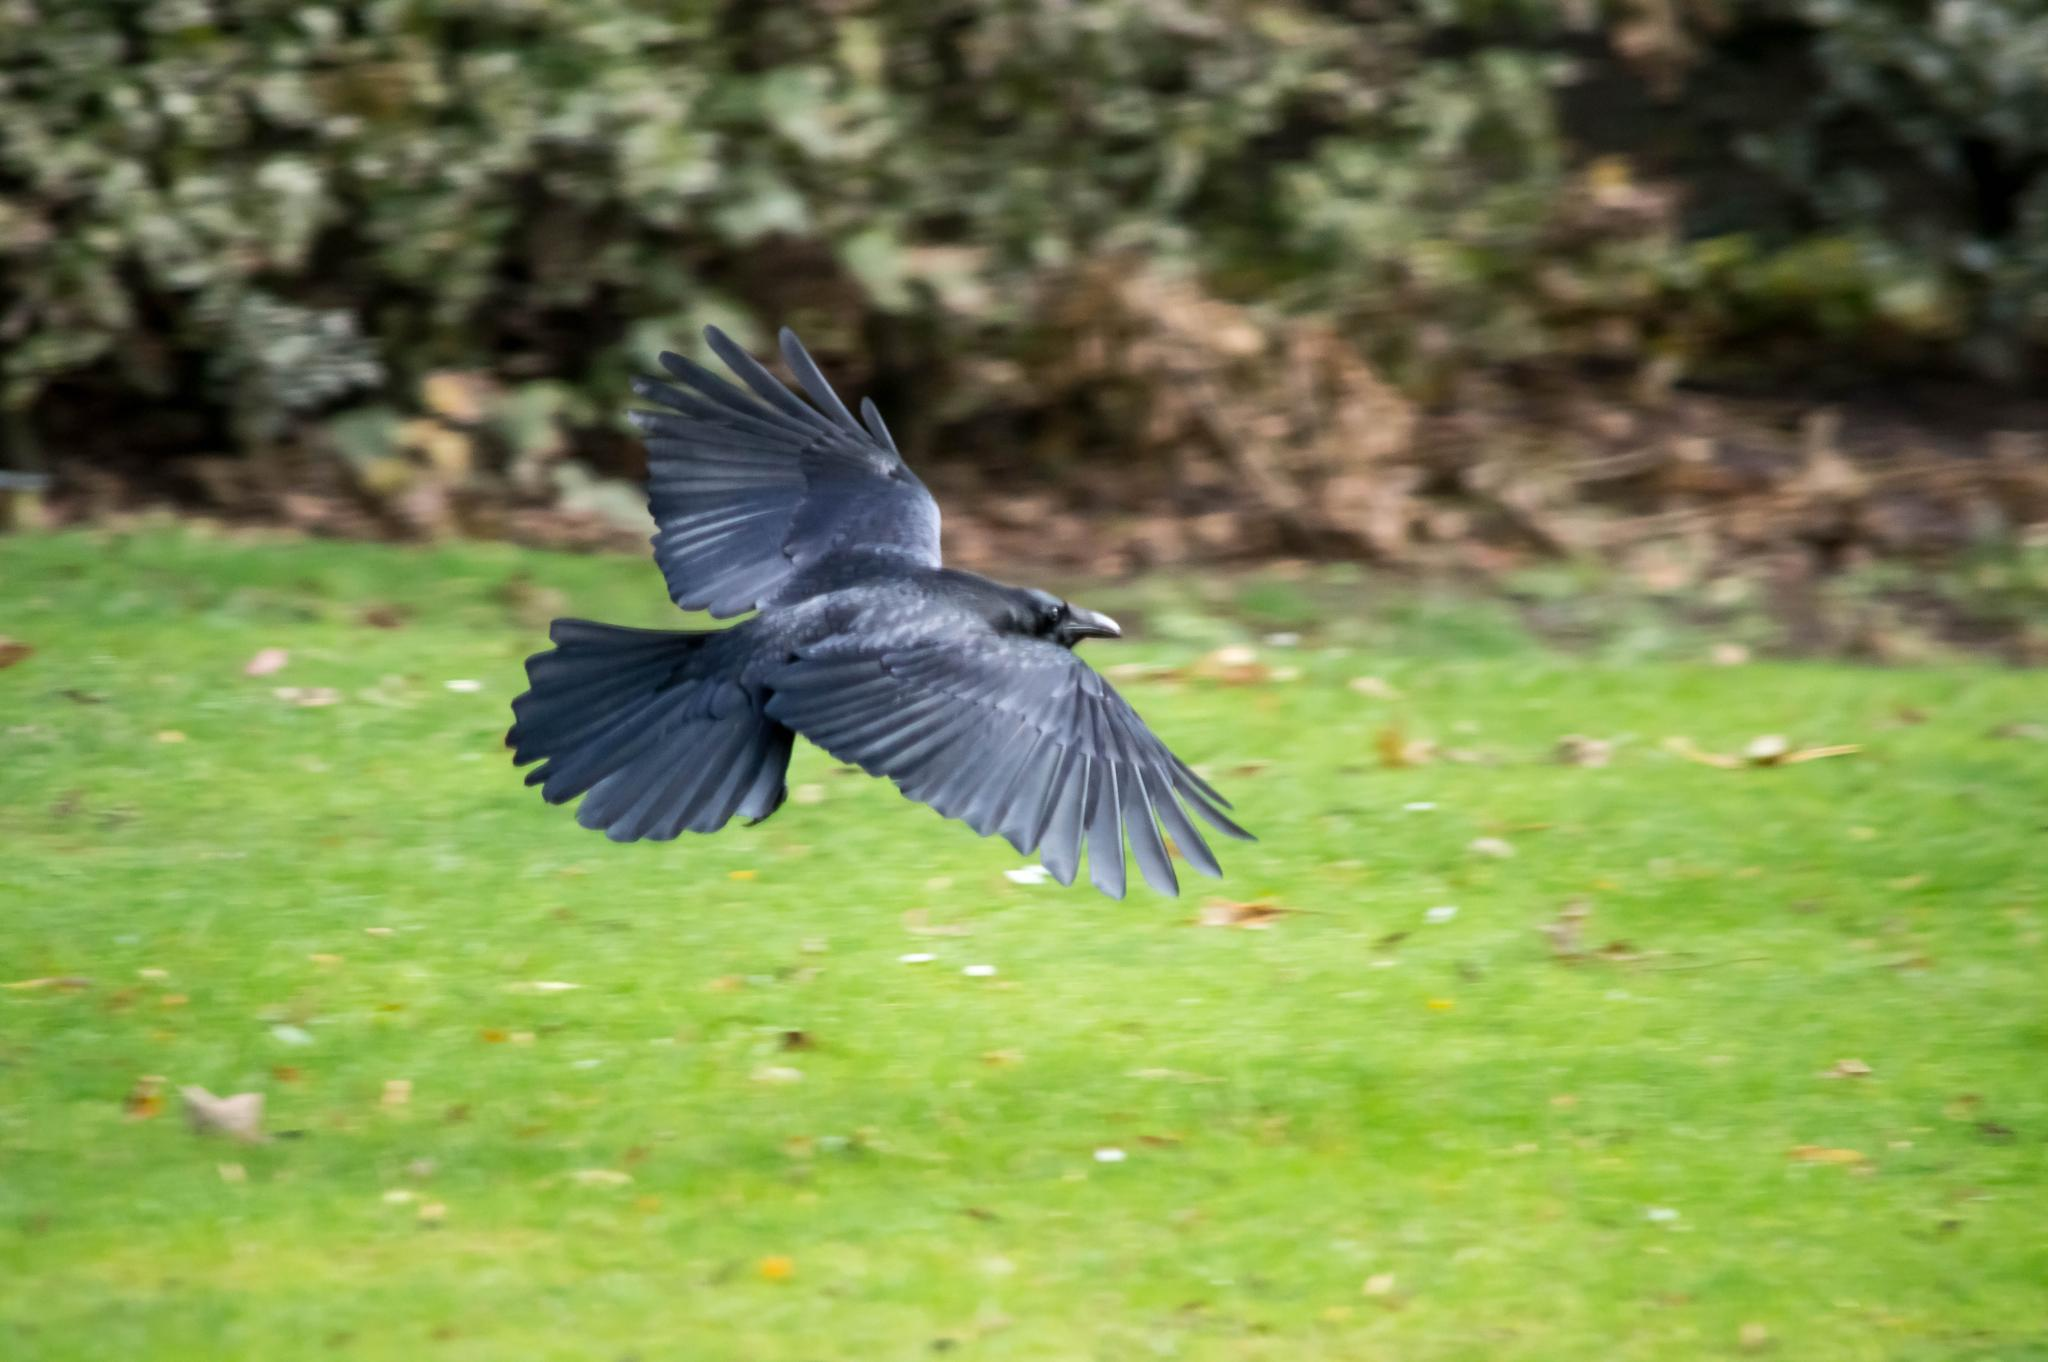 crow in flight by Robert Stephenson